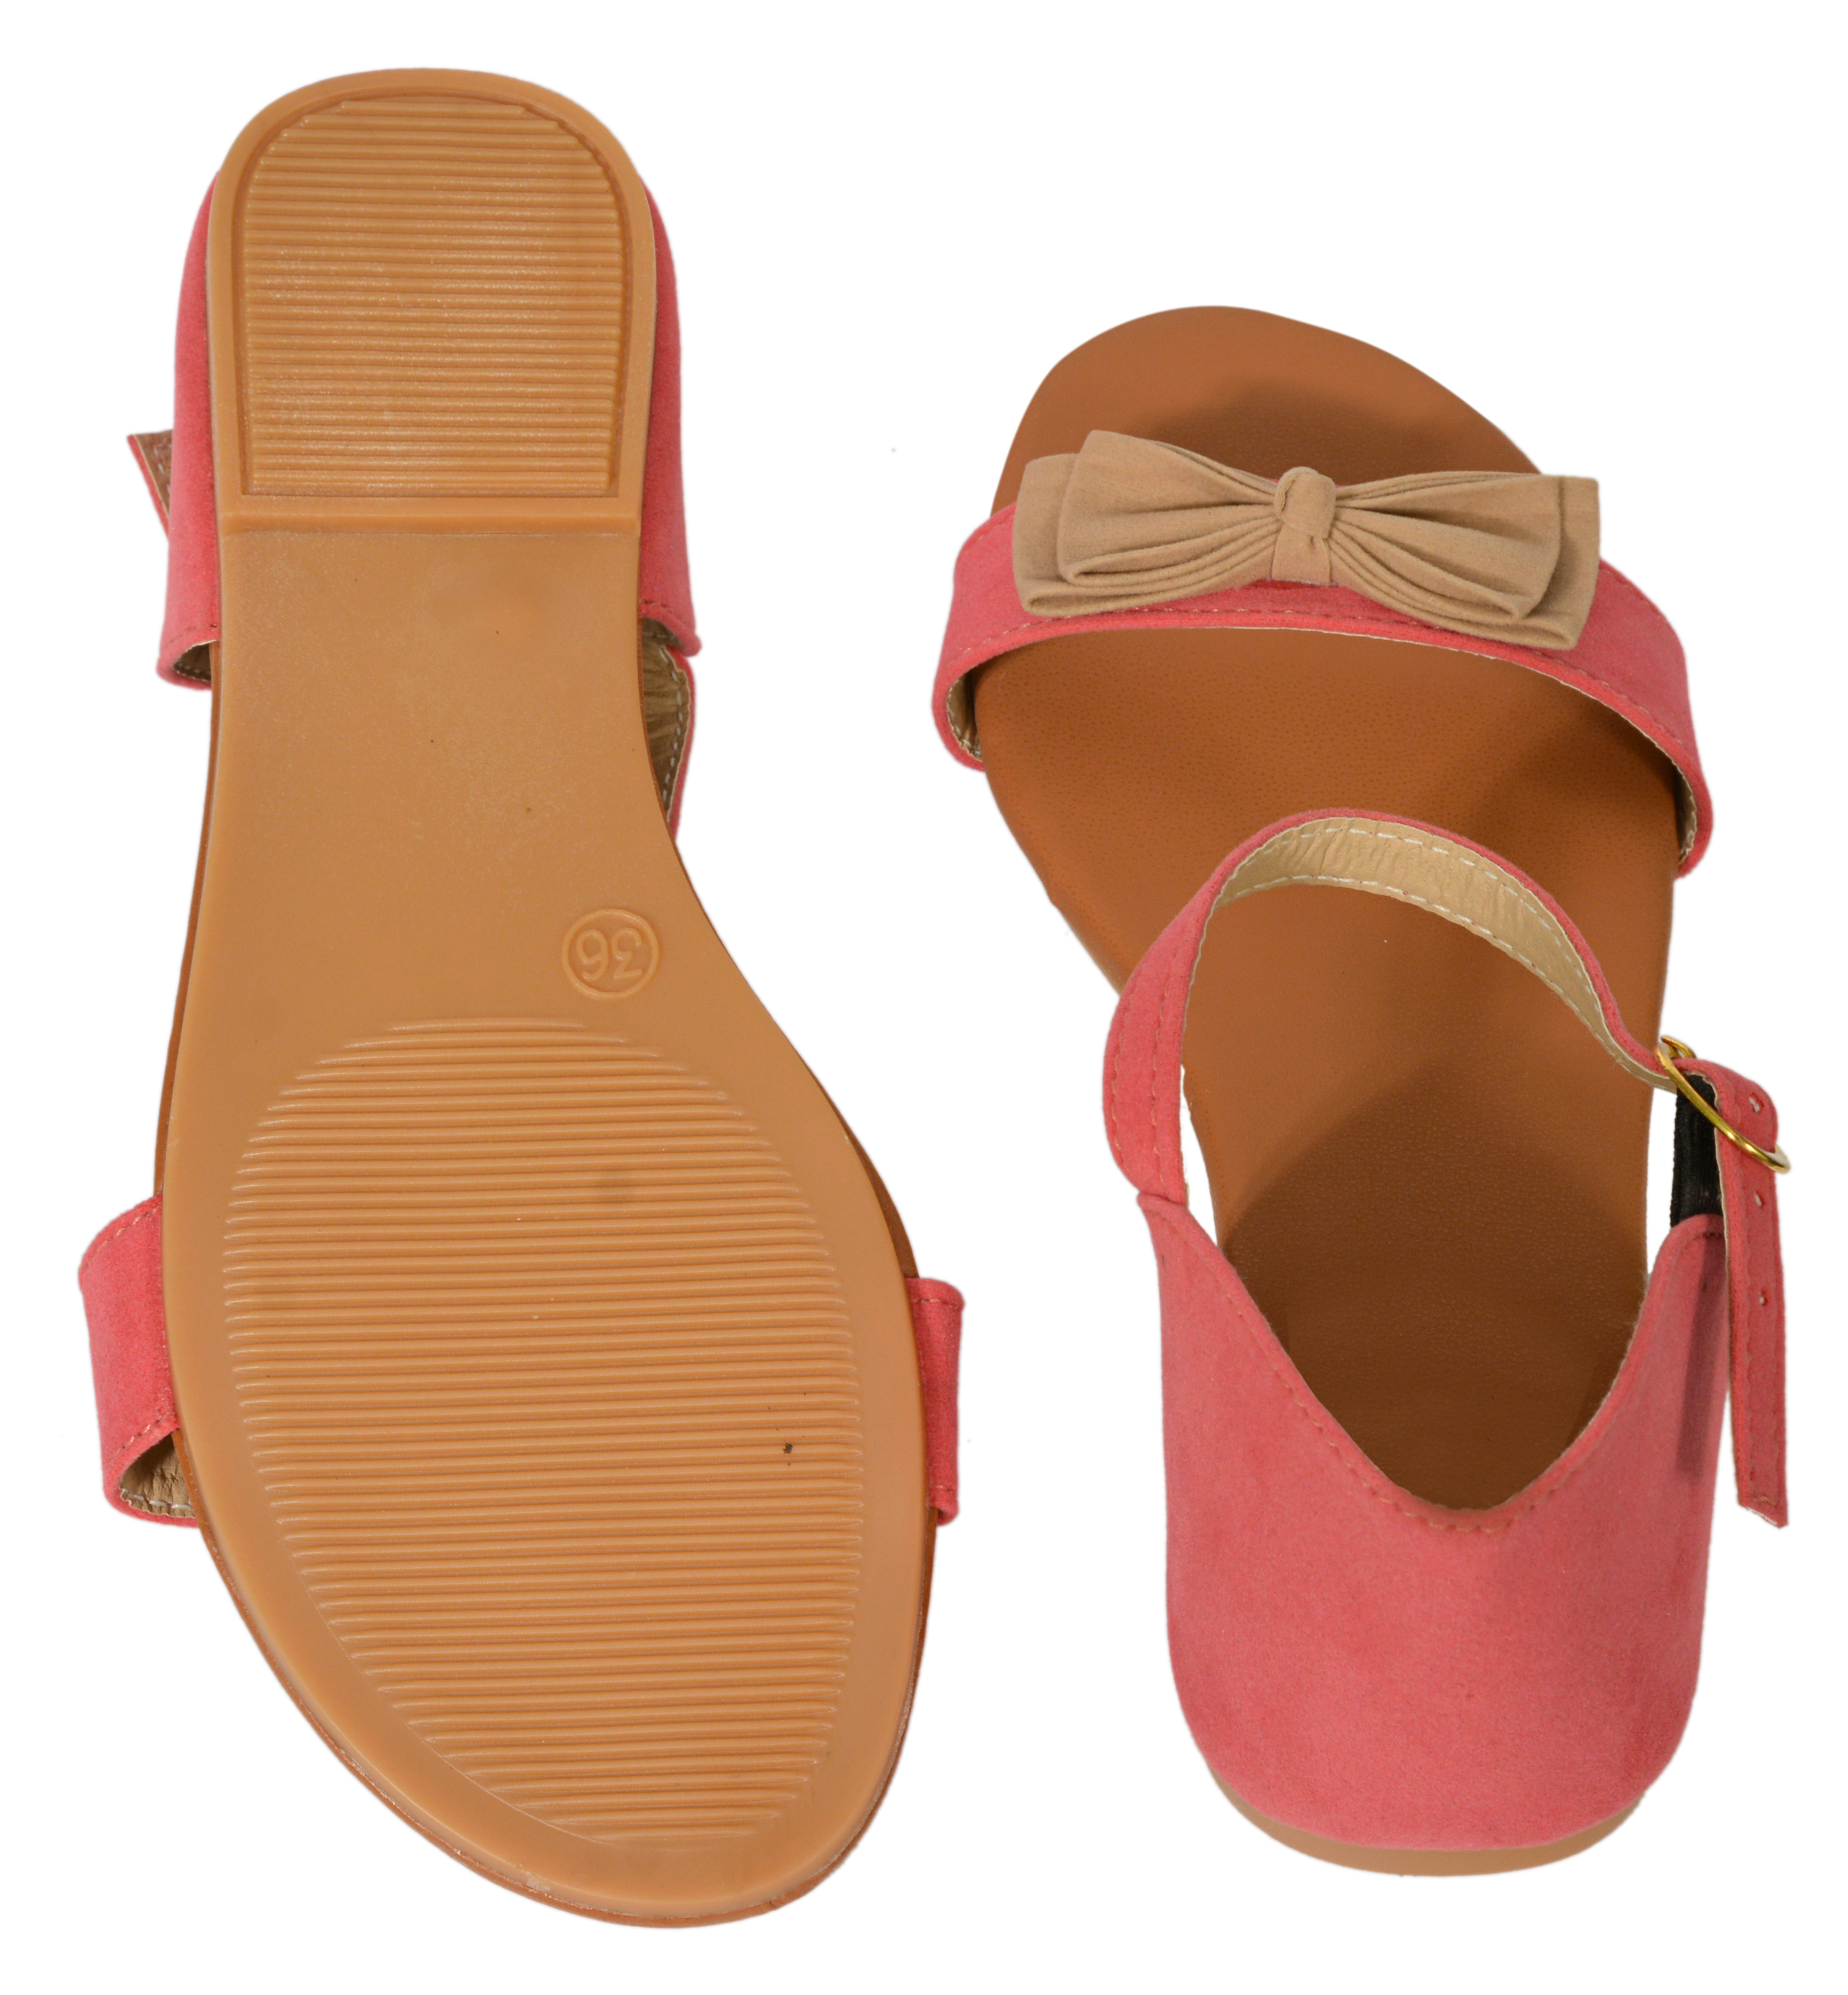 Gibelle Pretty Synthetic Leather Pink Women's Flat Sandal GWF-001-PN (Pink, 36-40, 5 PAIR)